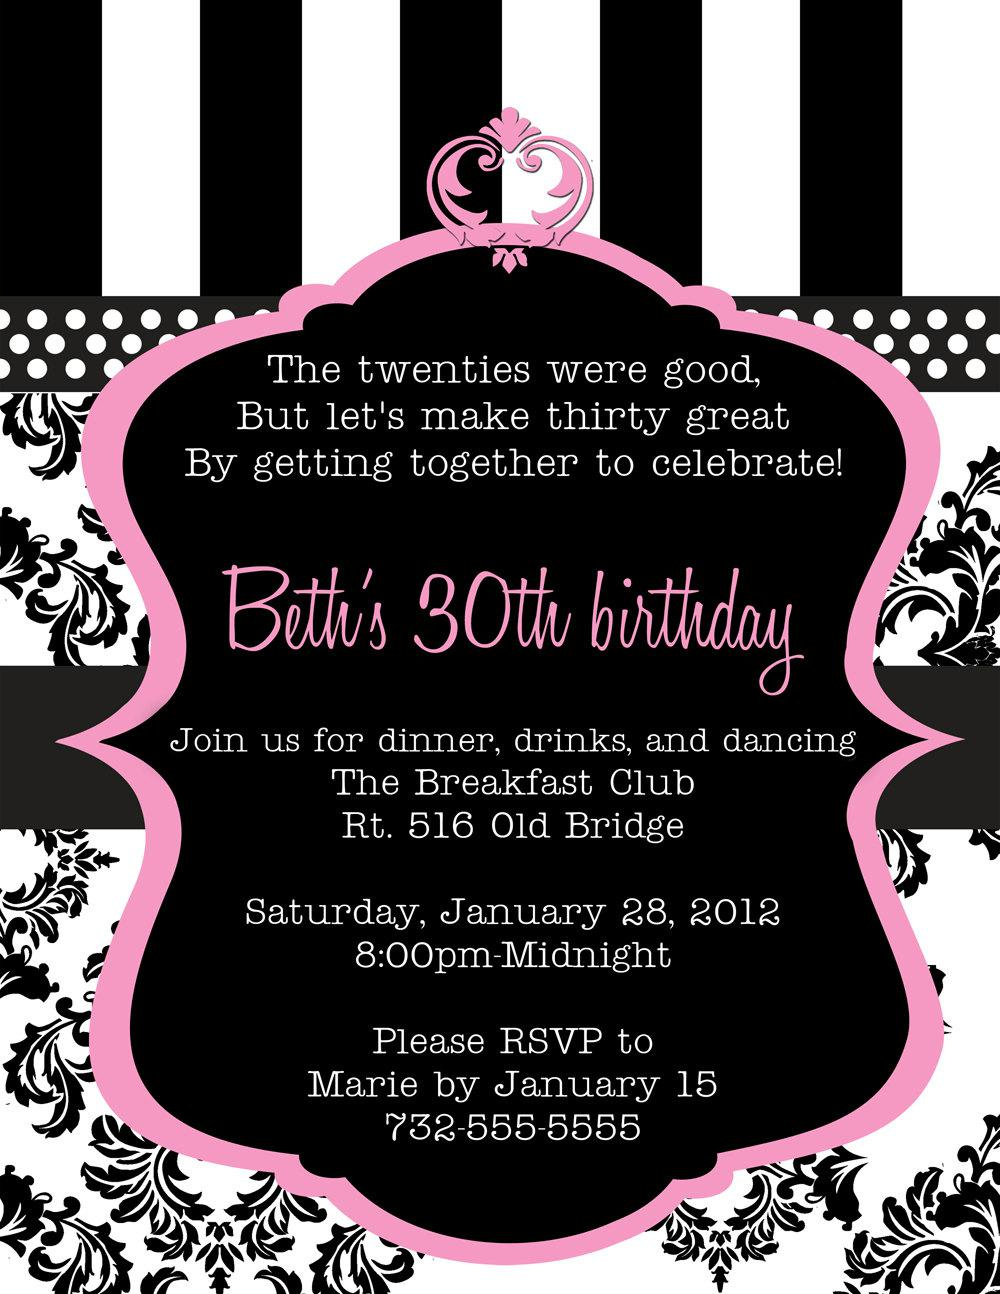 30th Birthday Invitation Wording Image Source in